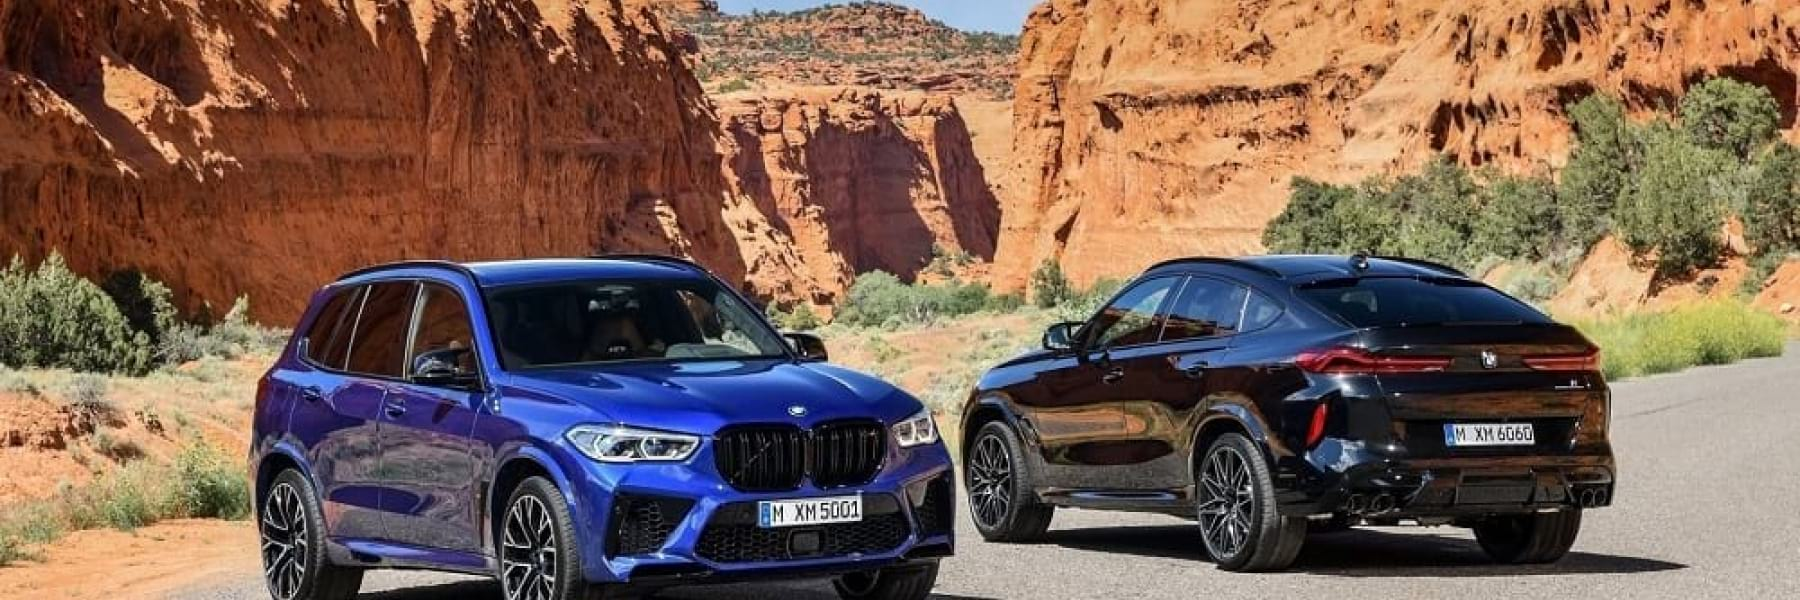 Bmw X5m And X6m 2020 Generates 617 Horsepower The Luxe Guide Luxury Specialist